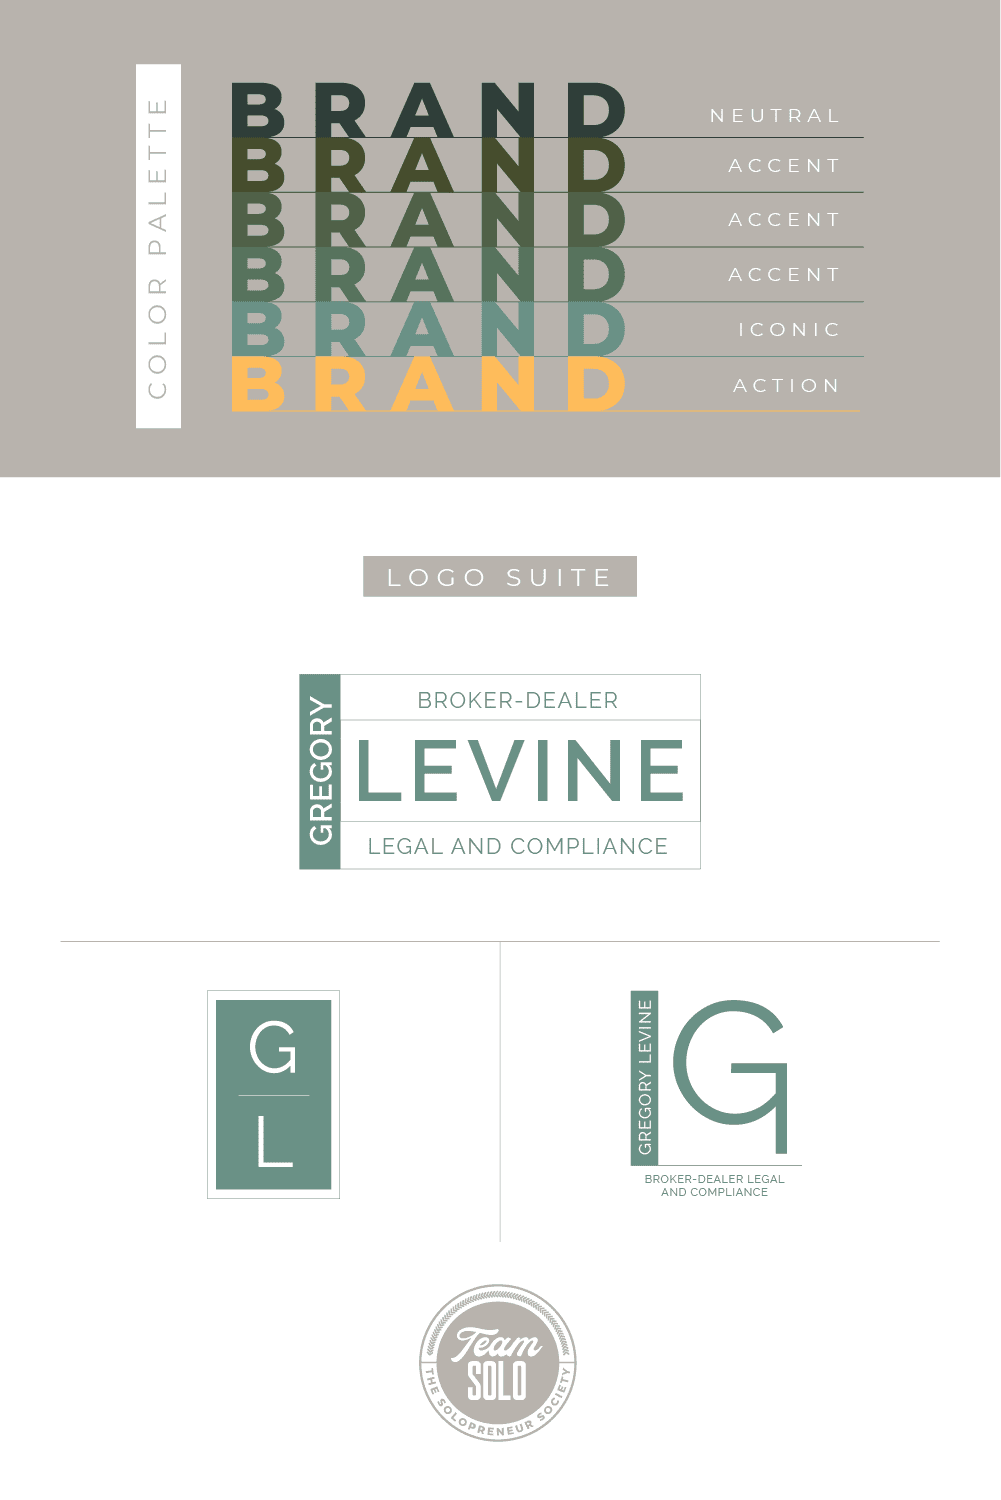 Gregory Levine Law Brand Identity Design